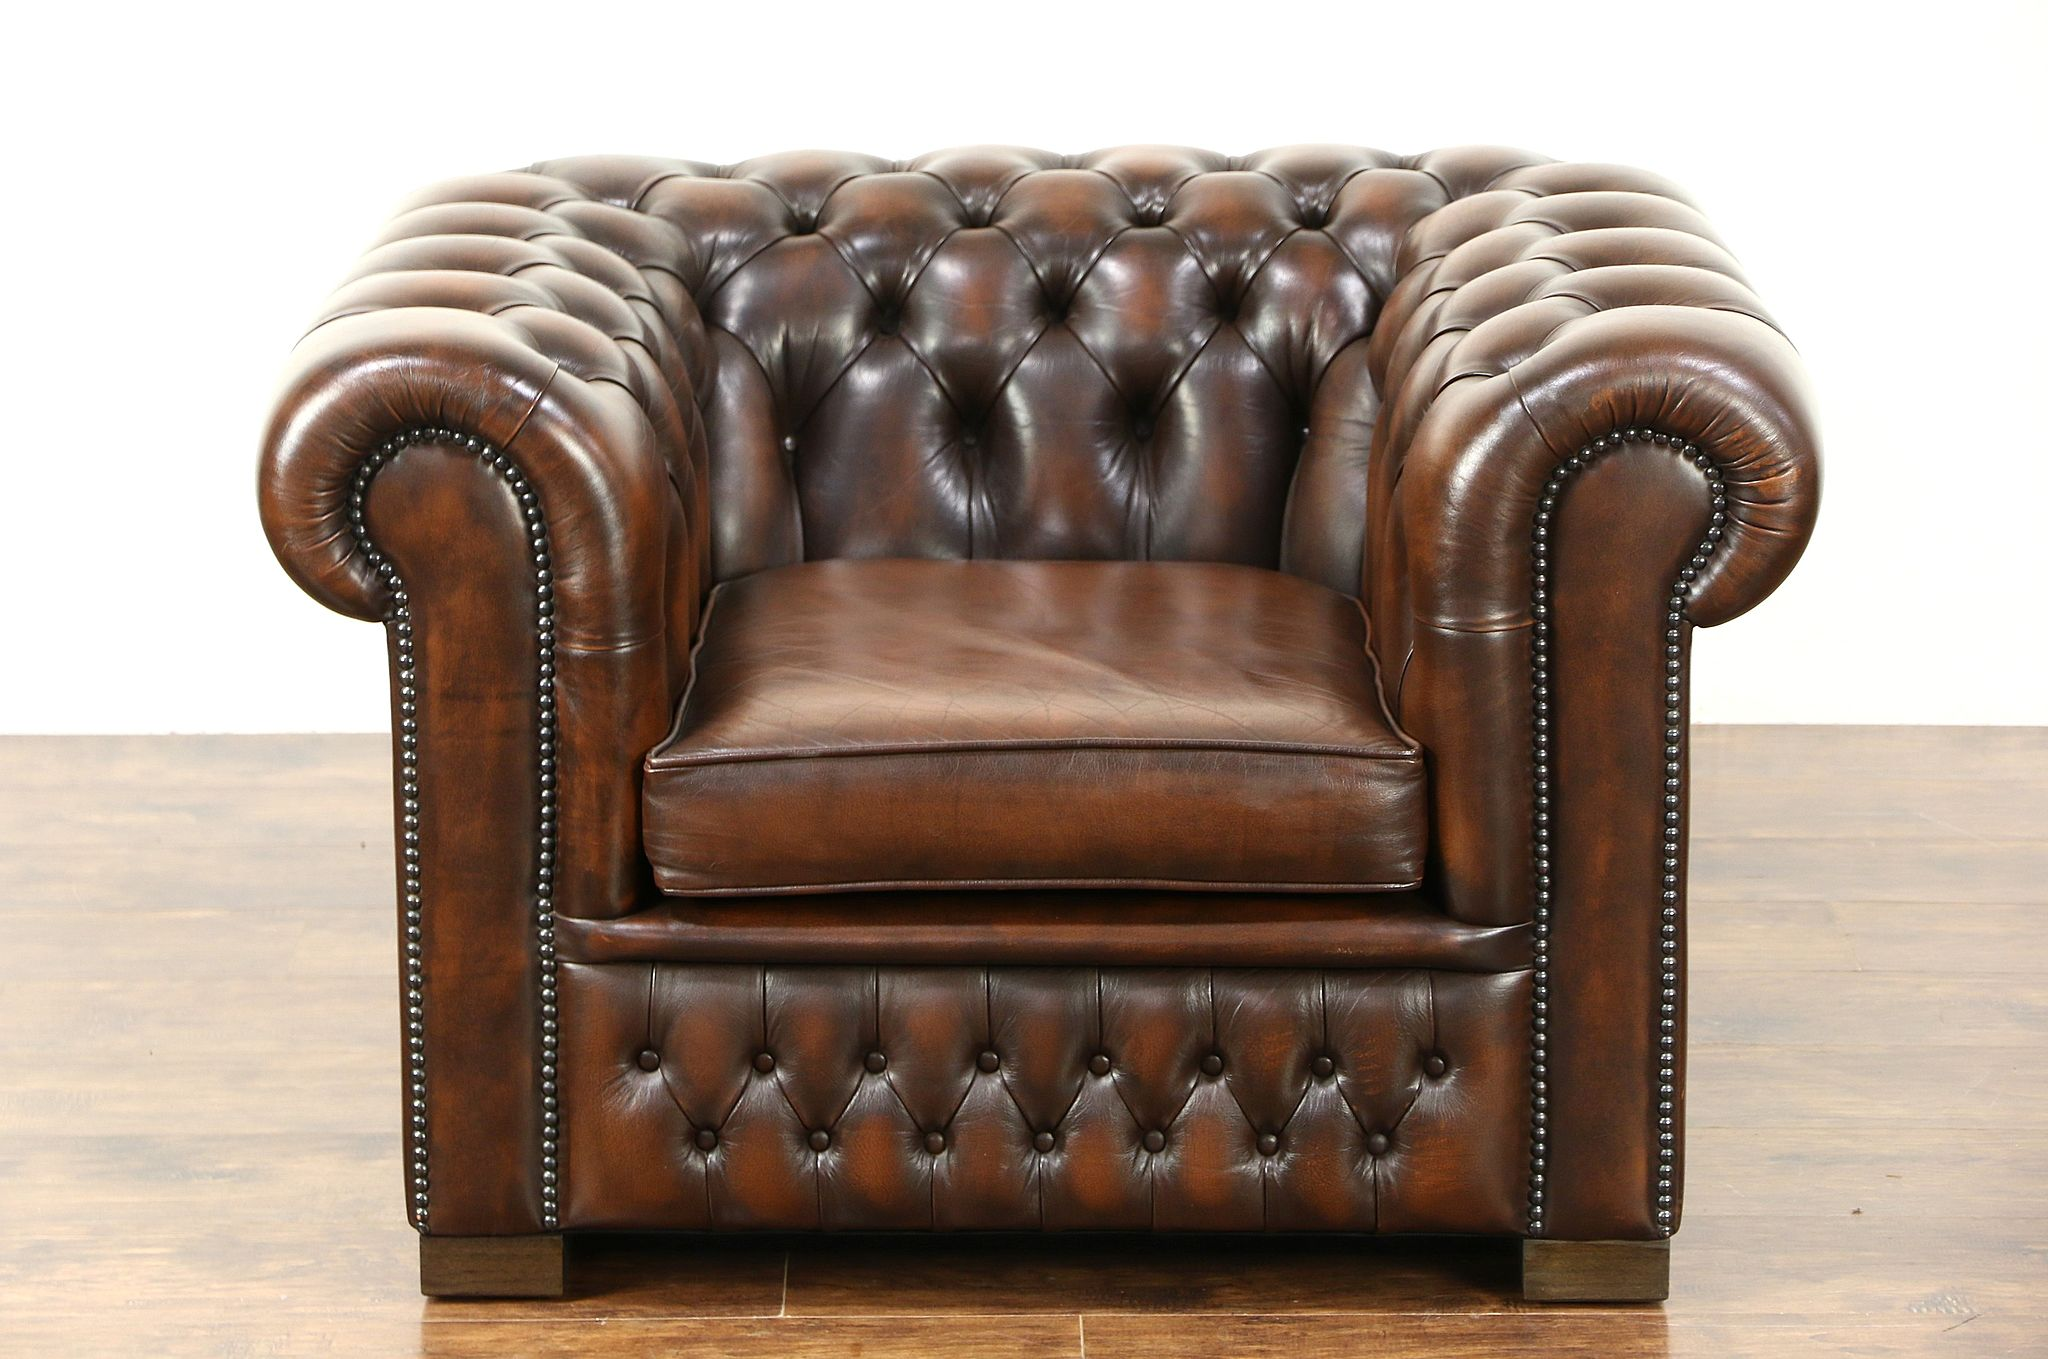 Chesterfield Tufted Brown Leather Vintage Scandinavian Tub Chair ...